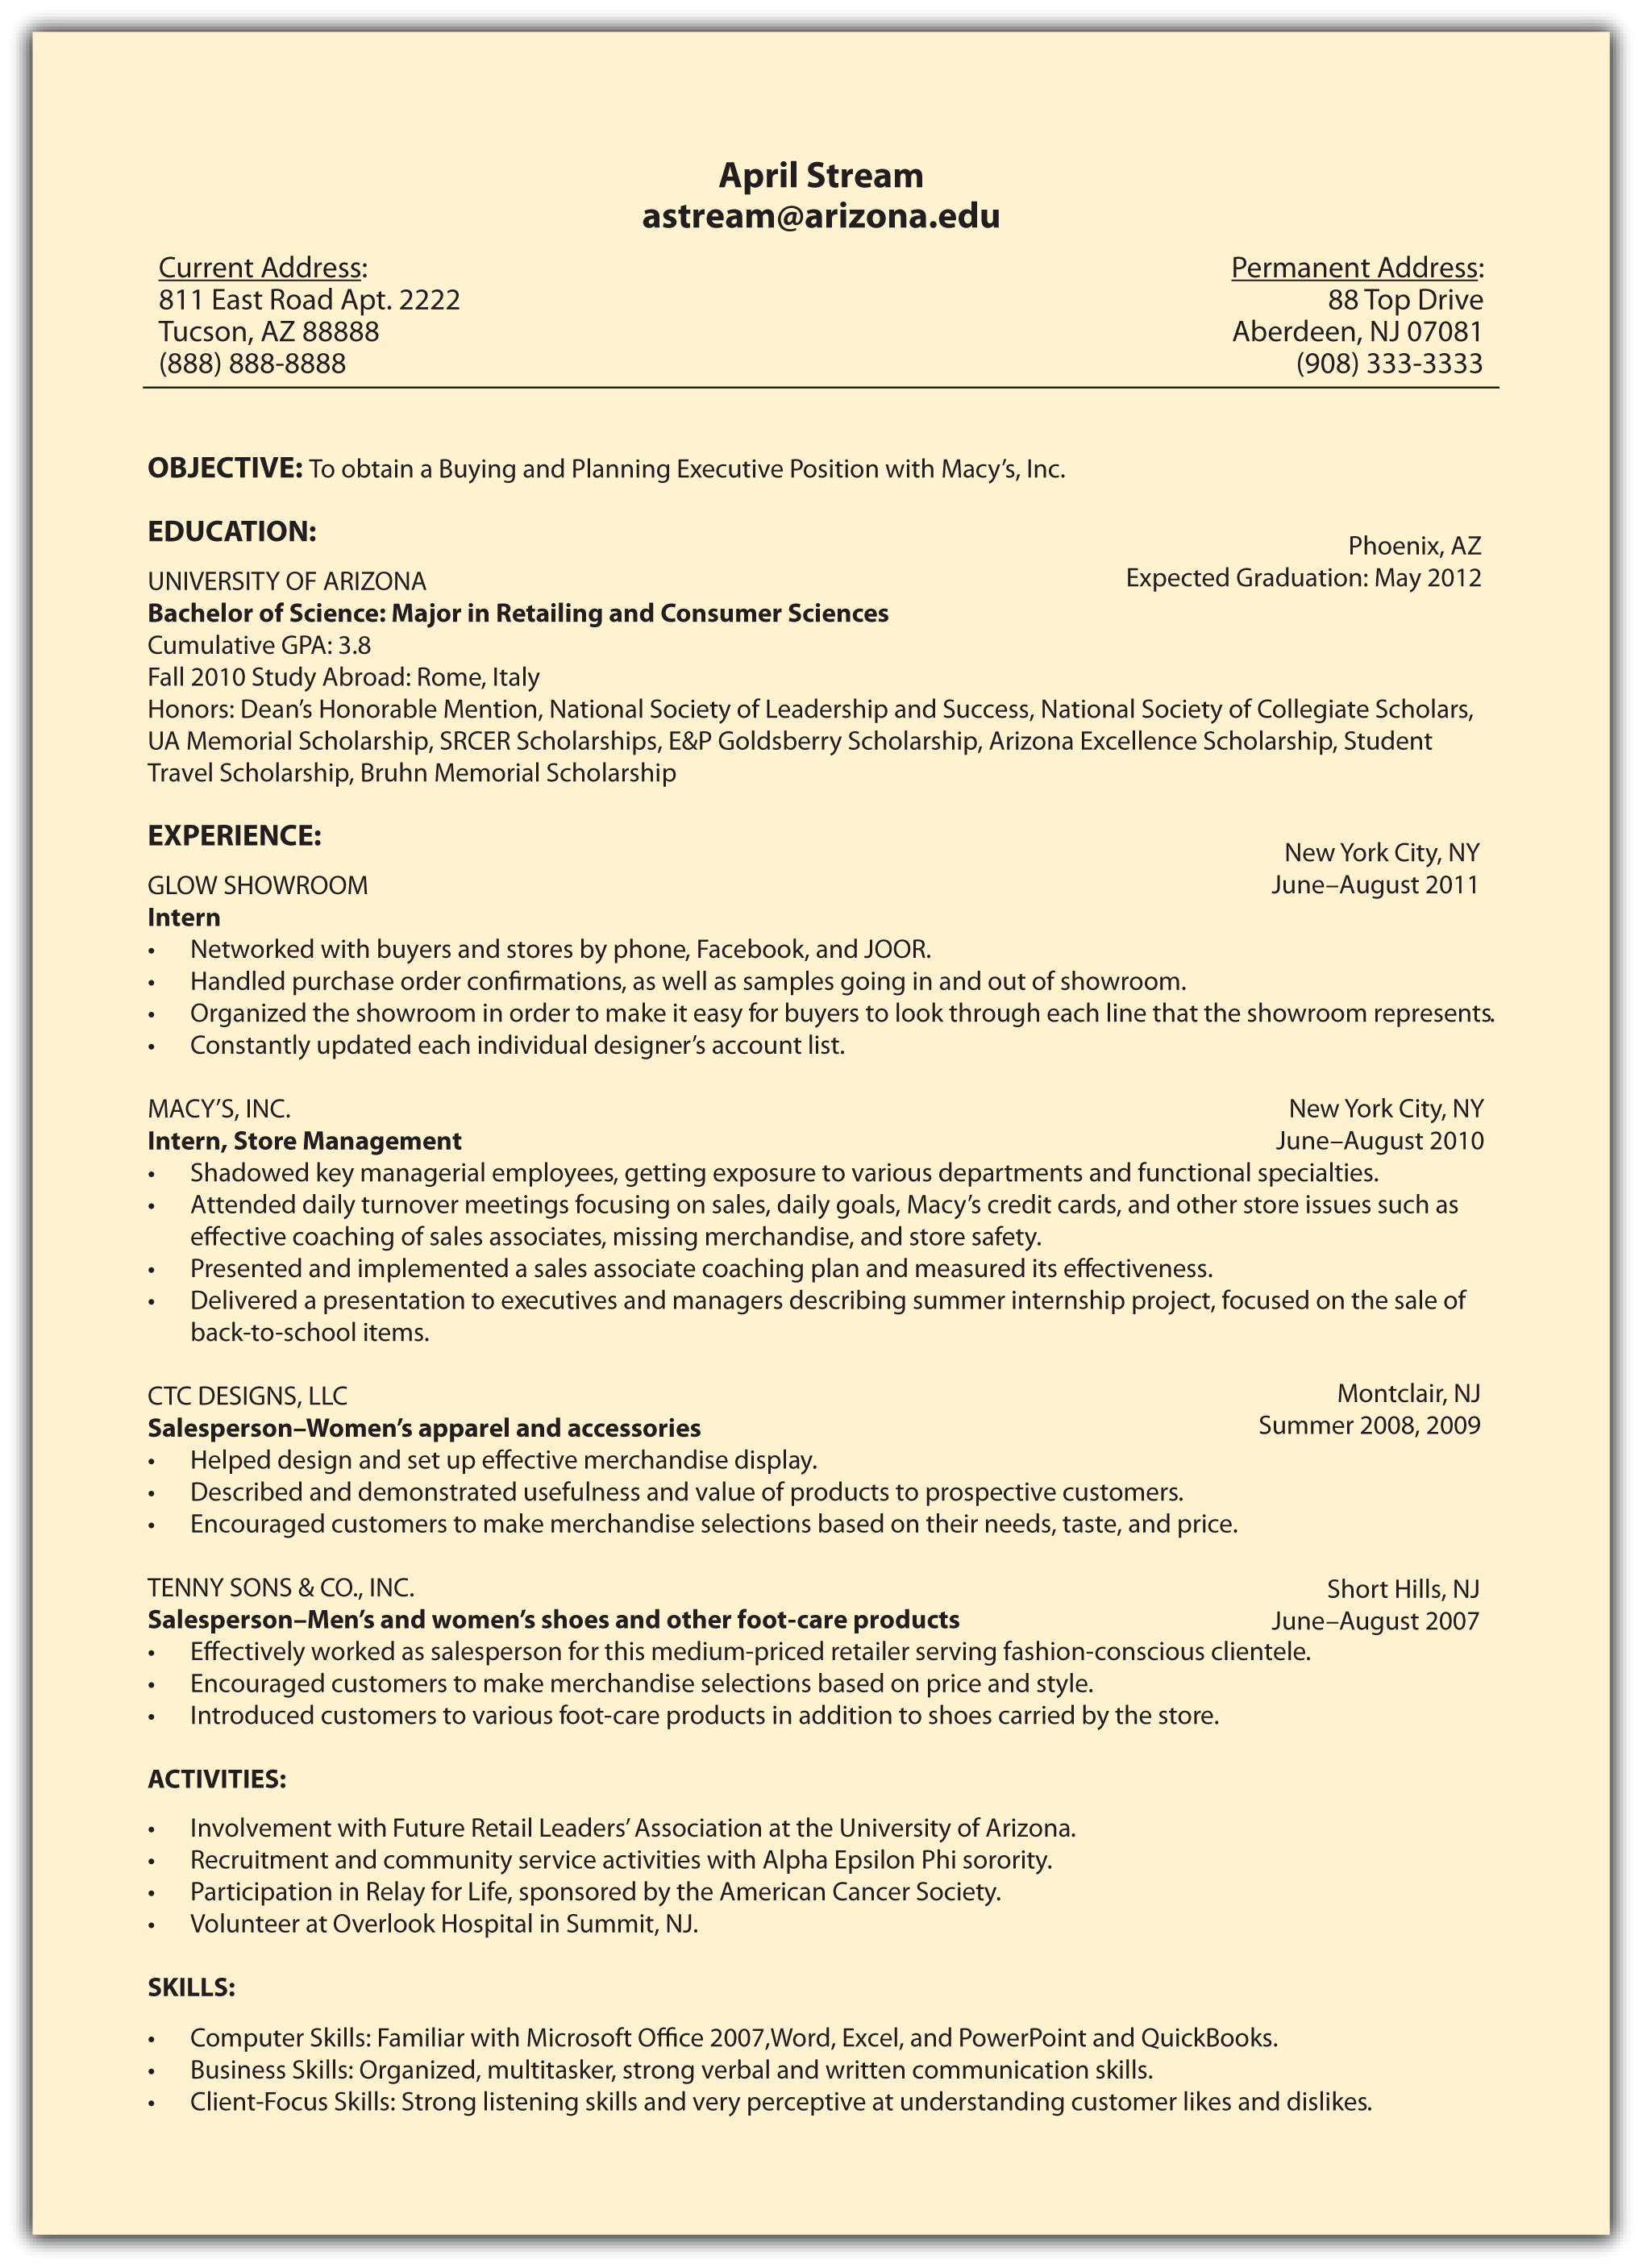 Resume National Society Of Leadership And Success Resume step 2 create a compelling marketing campaign part i 4 9 sample